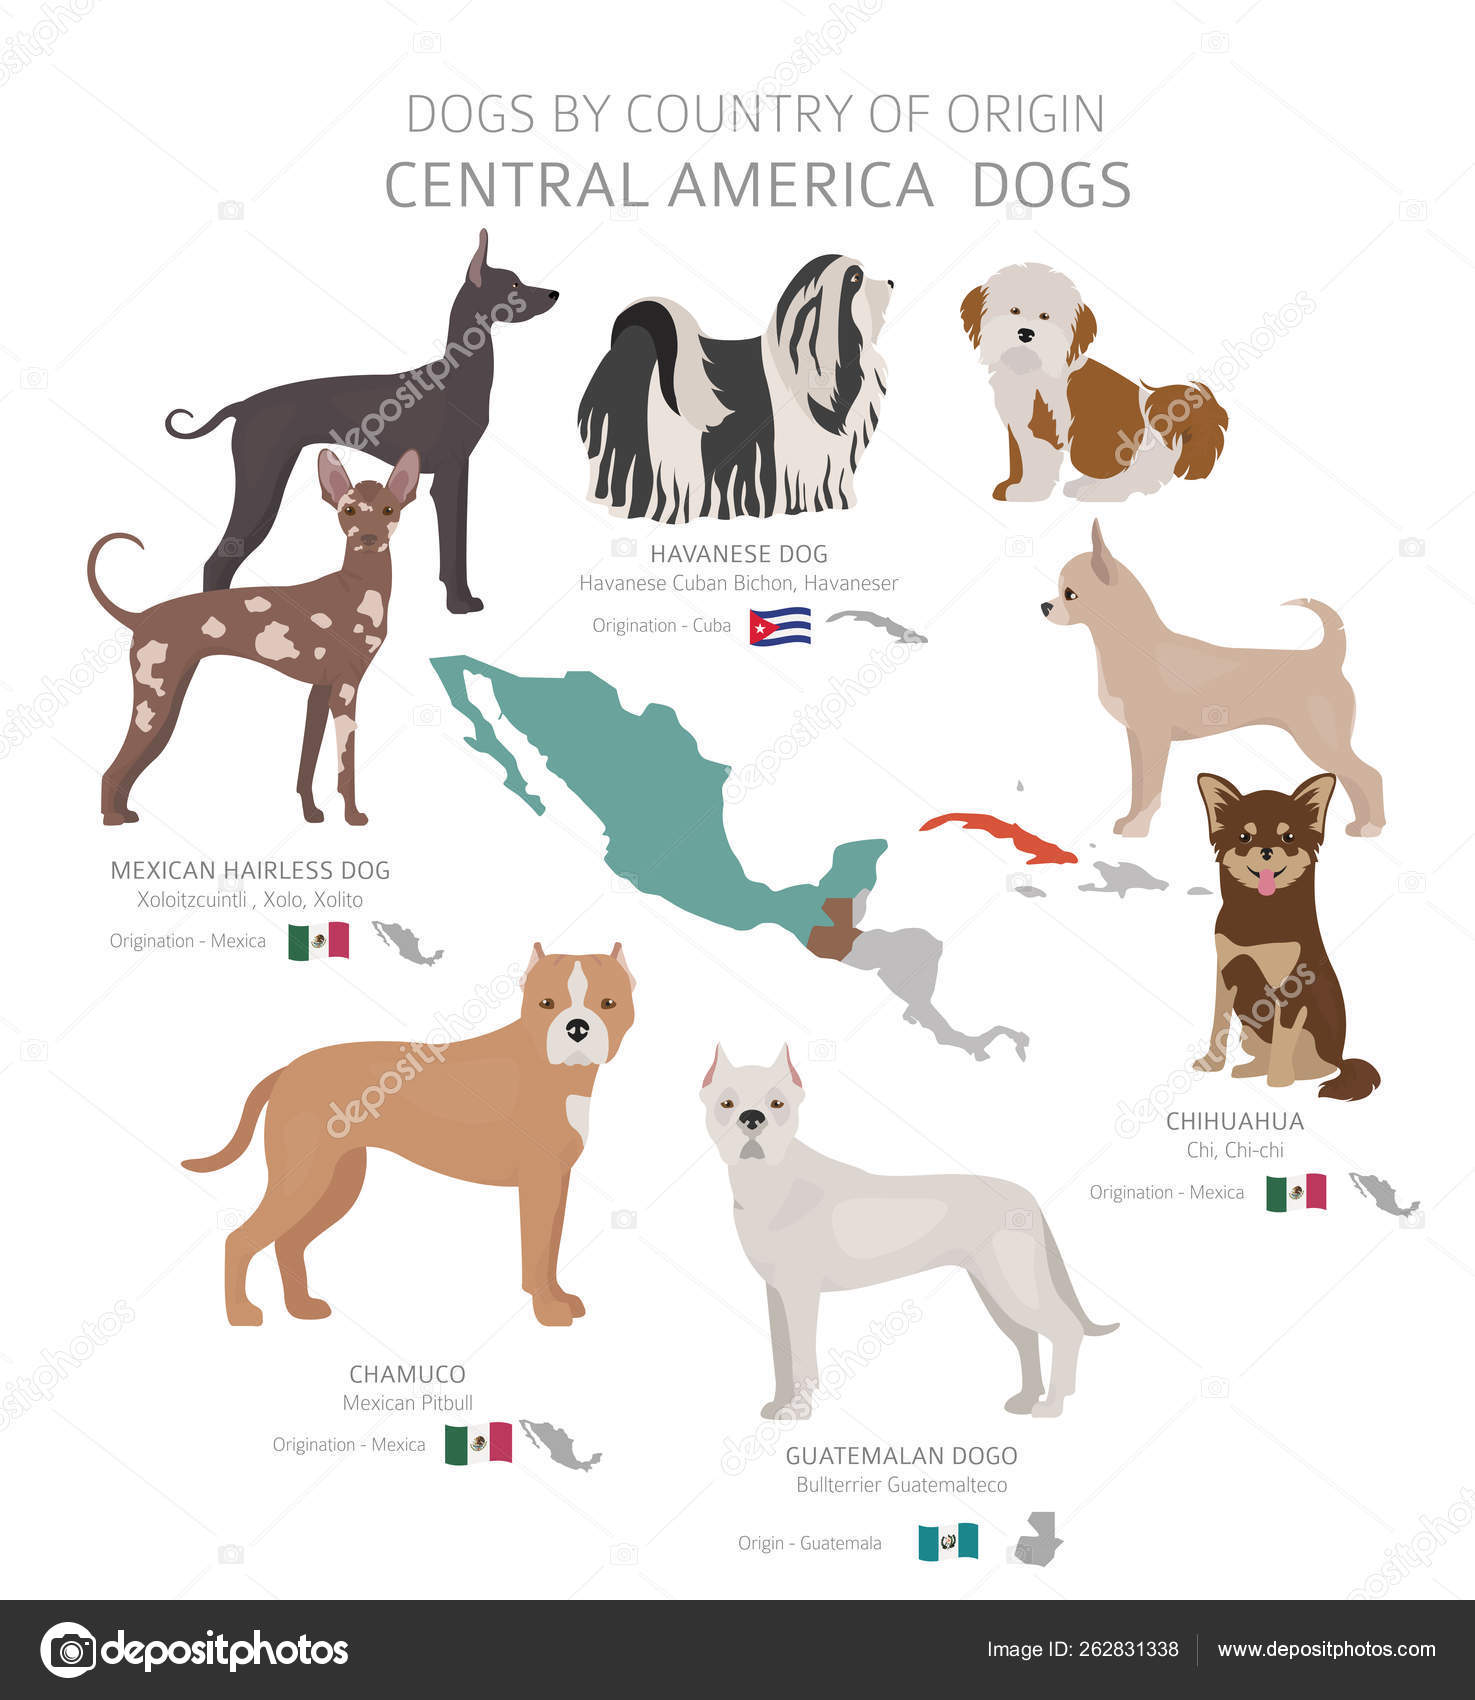 Dogs by country of origin  Central American dog breeds  Shepherd